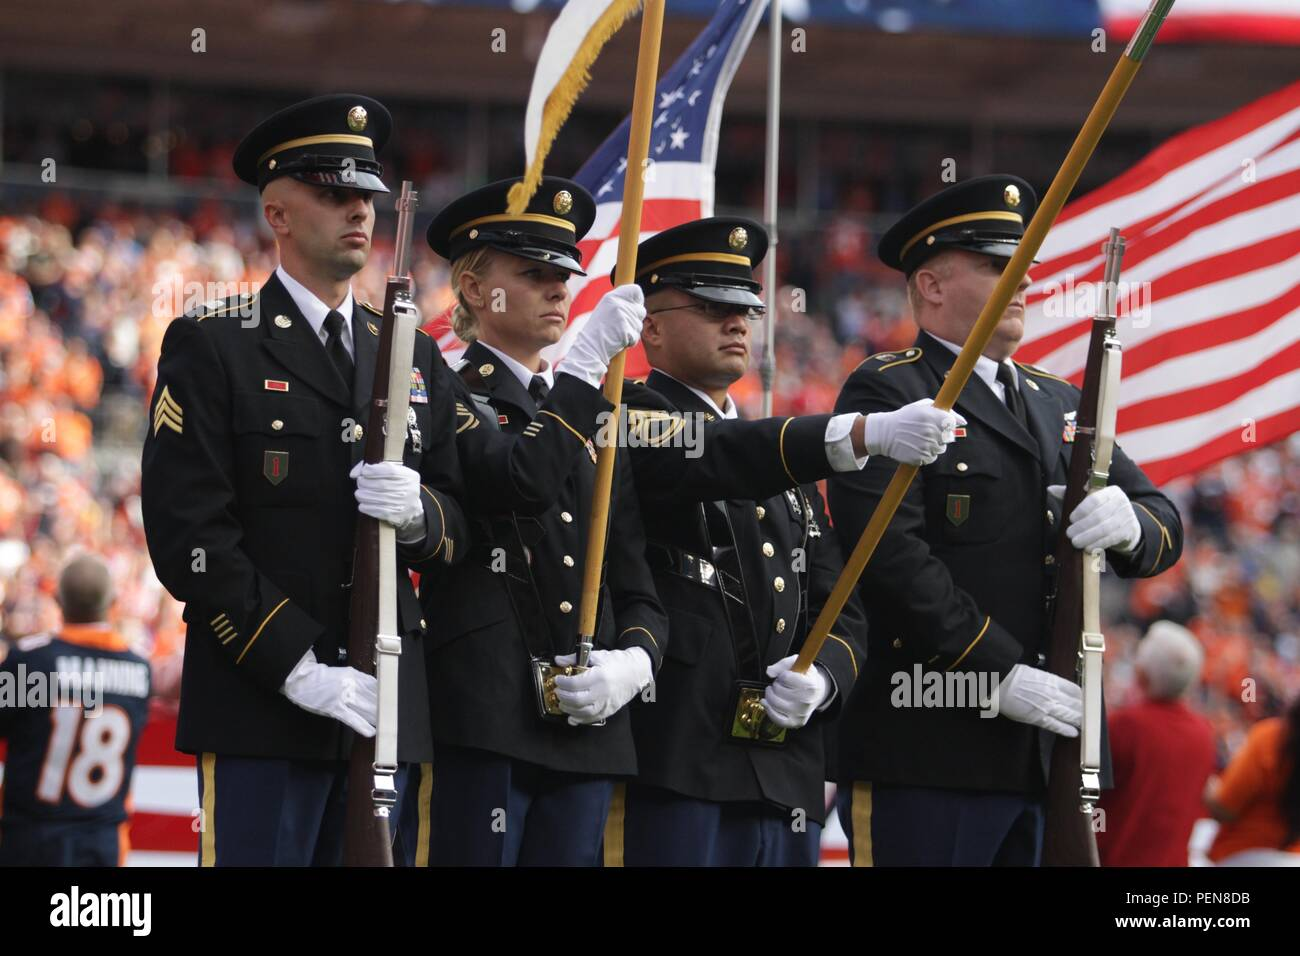 2d40ef6a9 Members of the Colorado National Guard Honor Guard present the colors  during the opening ceremonies for the Salute to Service game between the  Denver ...